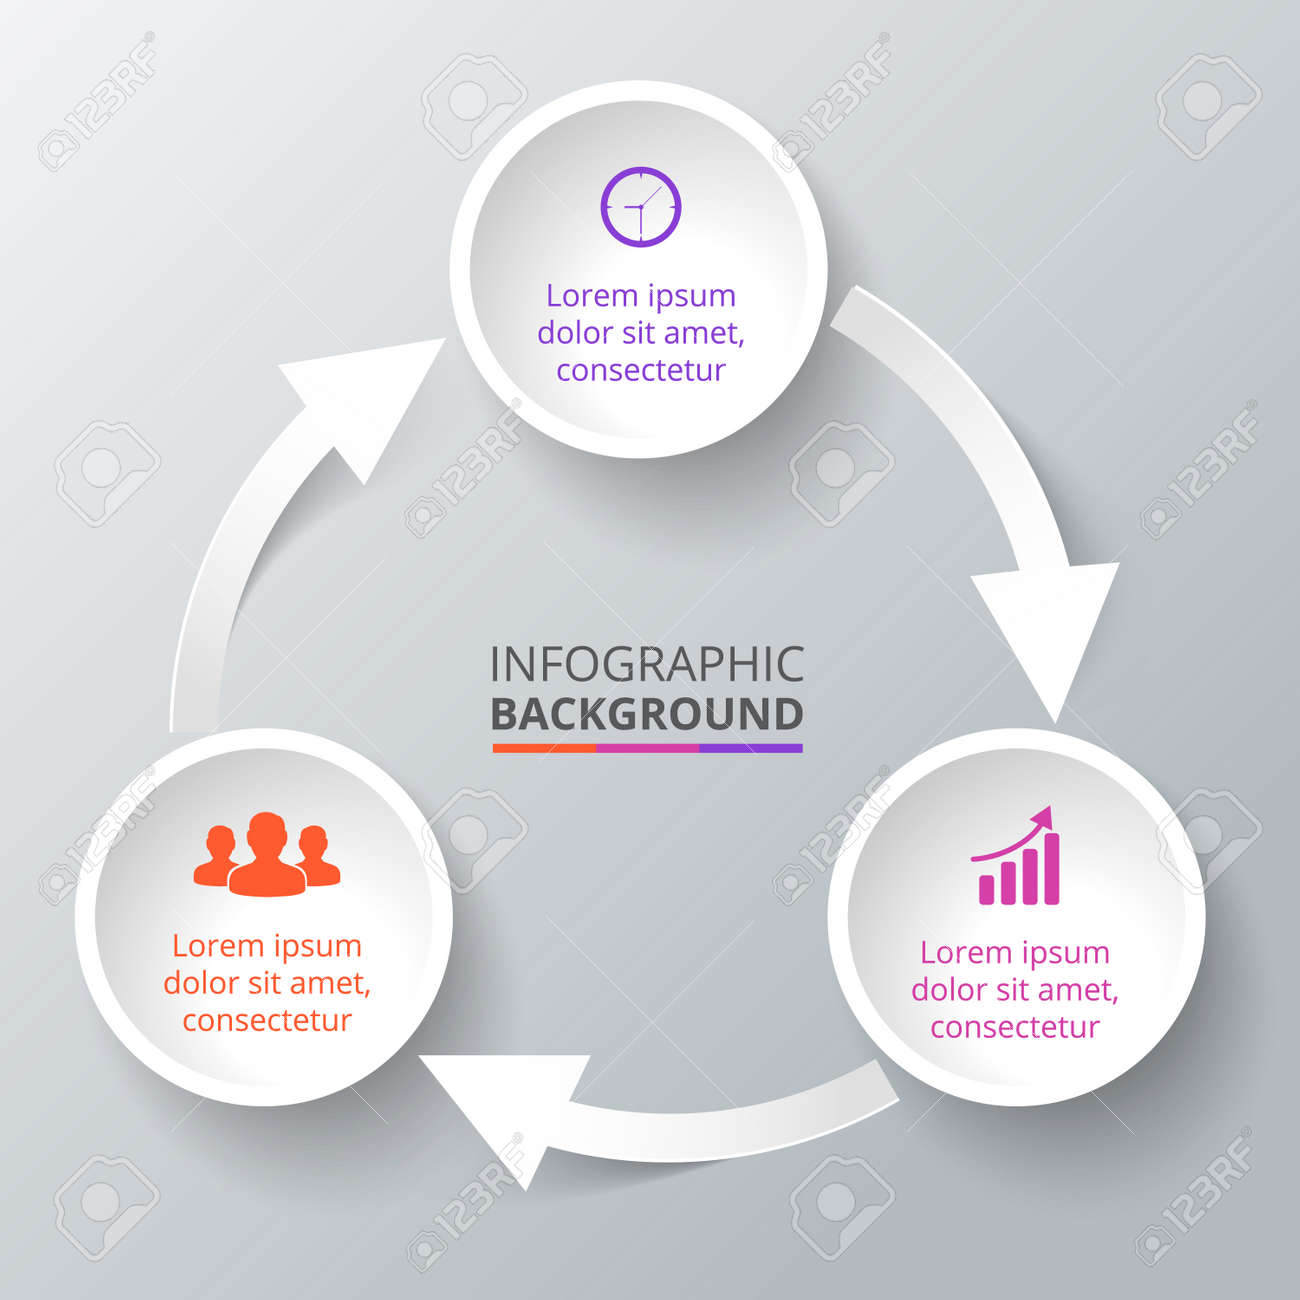 Process cycling arrow by arrow royalty free stock images image - Vector Vector Circle Element With Arrows For Infographic Template For Cycle Diagram Graph Presentation Business Concept With 3 Options Parts Steps